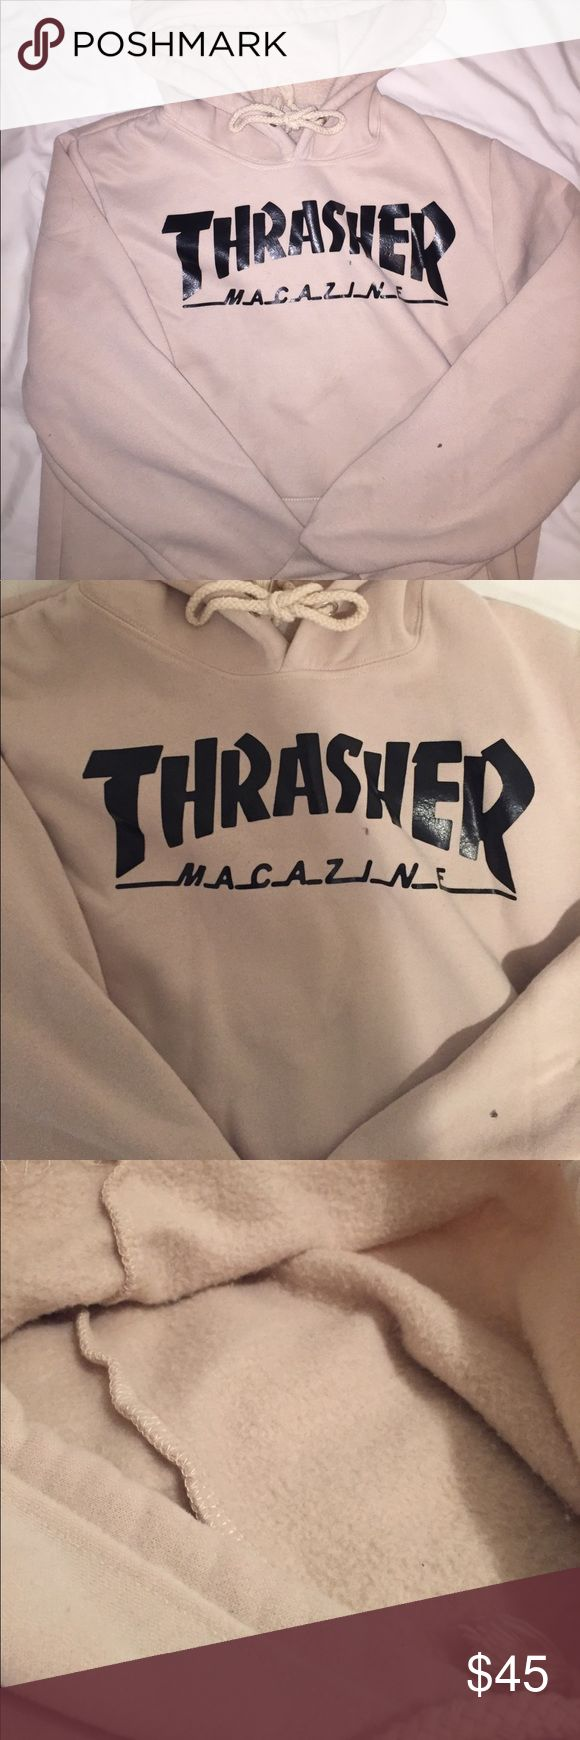 Never worn thrasher nude hoodie This is super soft and new! Trendy sweatshirt reading thrasher. It's a pretty tan/taupe color. Super rare, price is negotiable:) (BM for exposure) Brandy Melville Sweaters